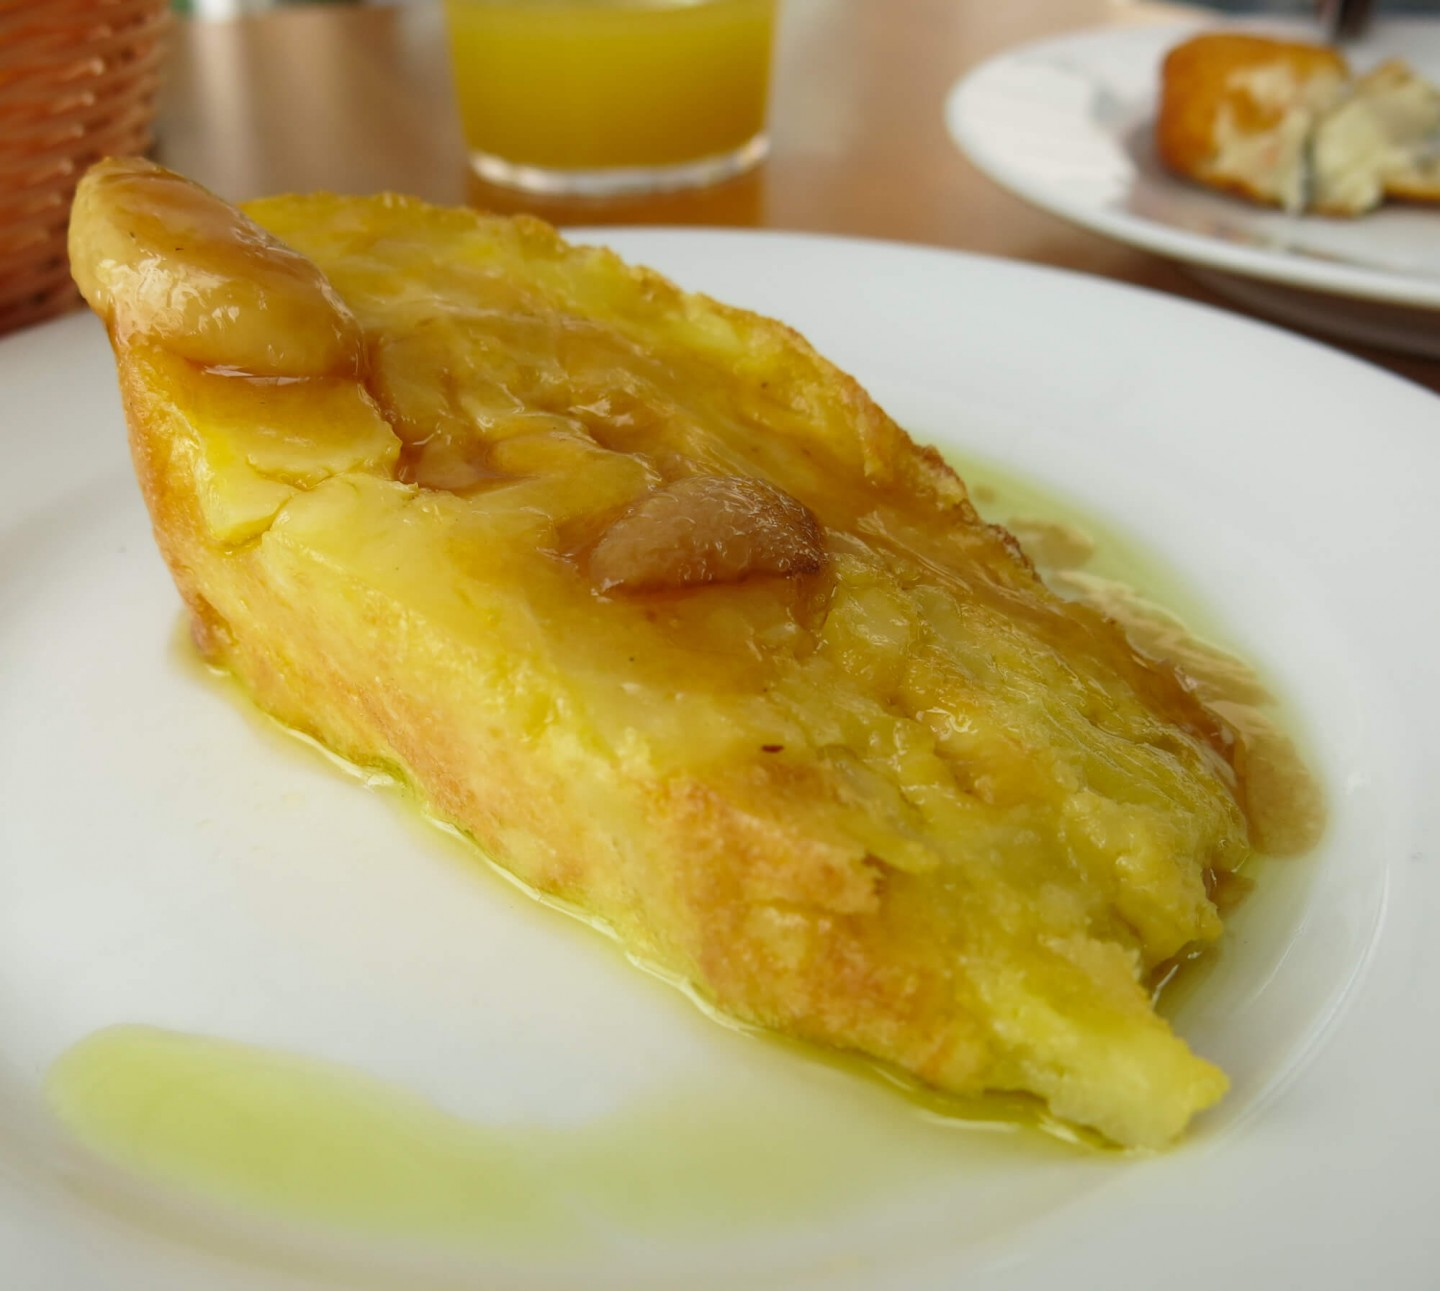 The Spanish omelette at Bodeguita Romero in Seville was the best of our trip! Find my top restaurants to eat at in Seville, Spain.